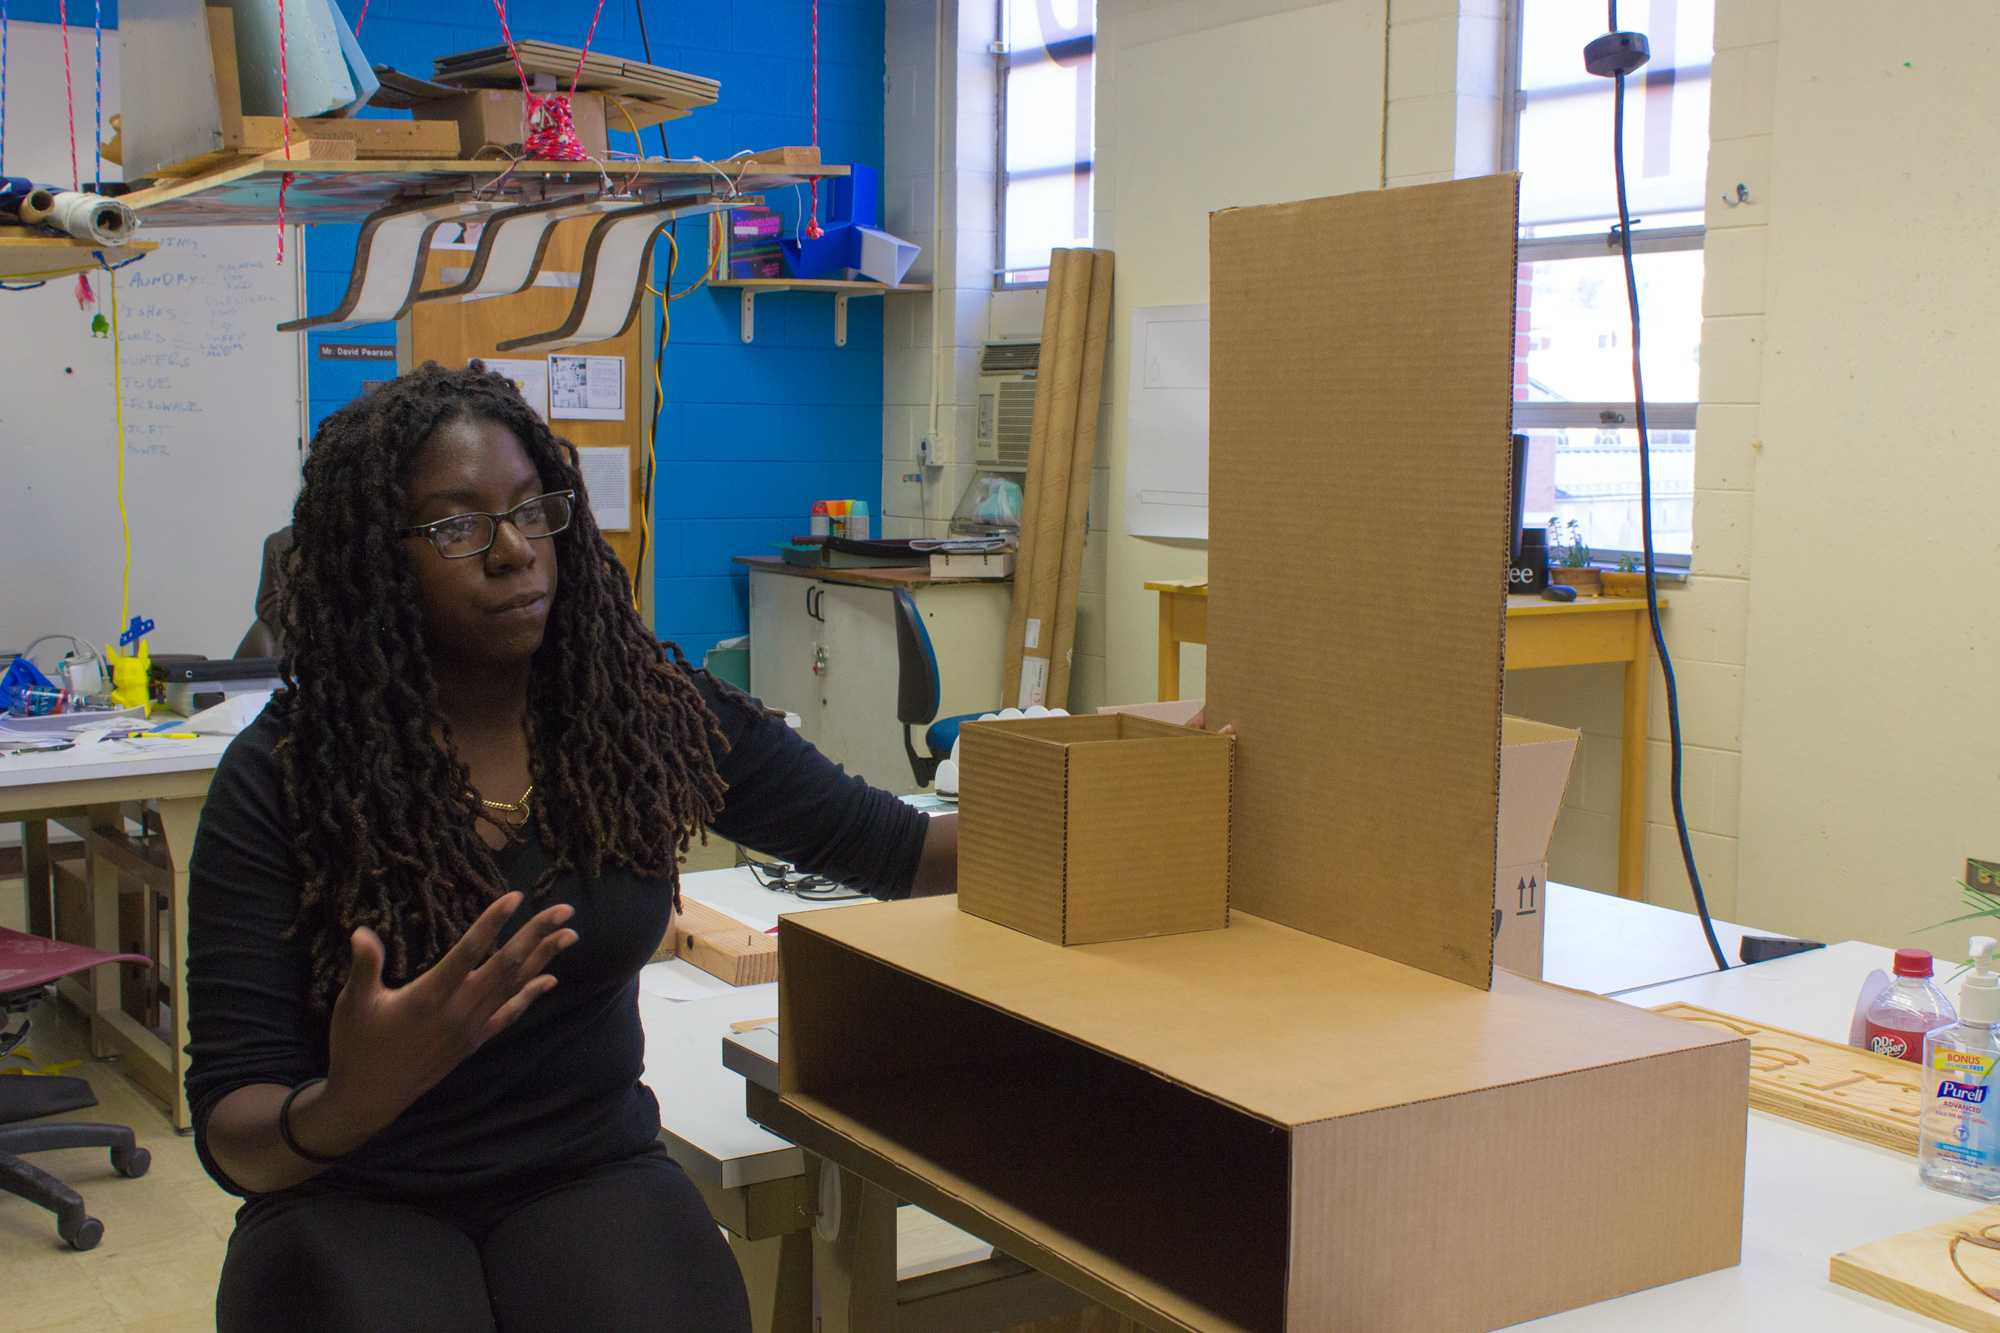 Senior industrial design major Sheilla Sanon explains her capstone project. The cardboard is a model for a shelf with a drawer, box and mirror. She describes it as a character furniture piece that describes her and her brother. Photo by Dallas Linger, Photo Editor